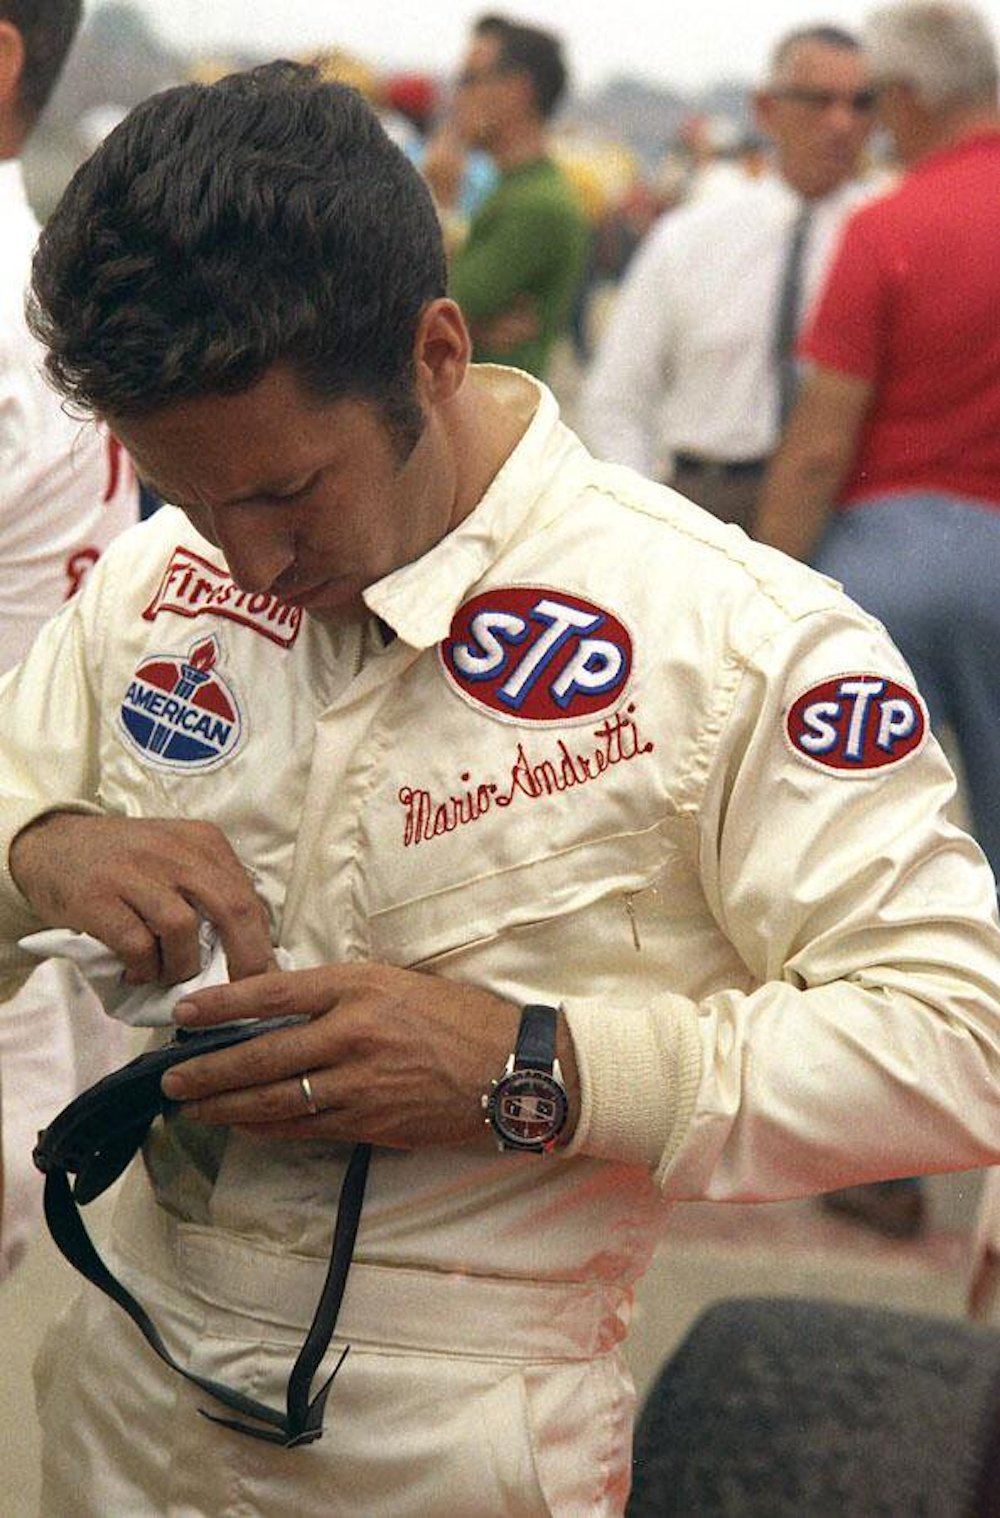 Mario Andretti seen with either a LeJour or Yema Rallye on the wrist during the 1969 Indy 500 - his sole win of the legendary race (photo credit: OnTheDash.com)